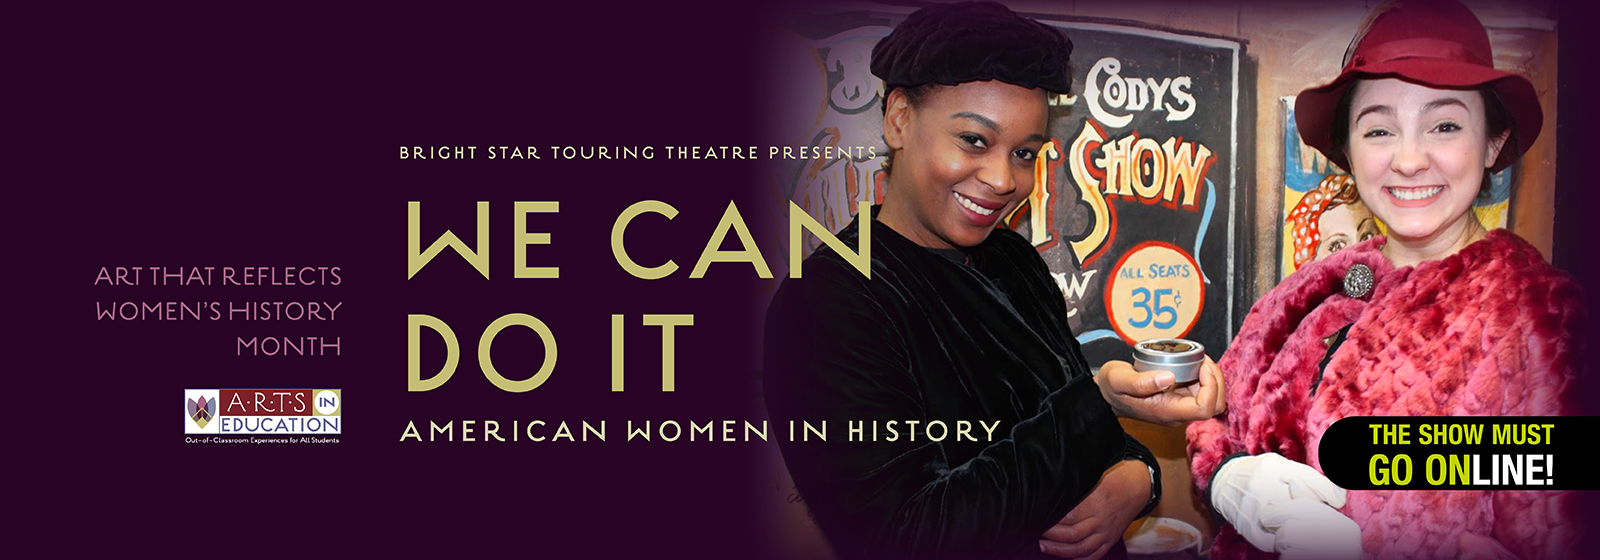 We Can Do It: American Women in History